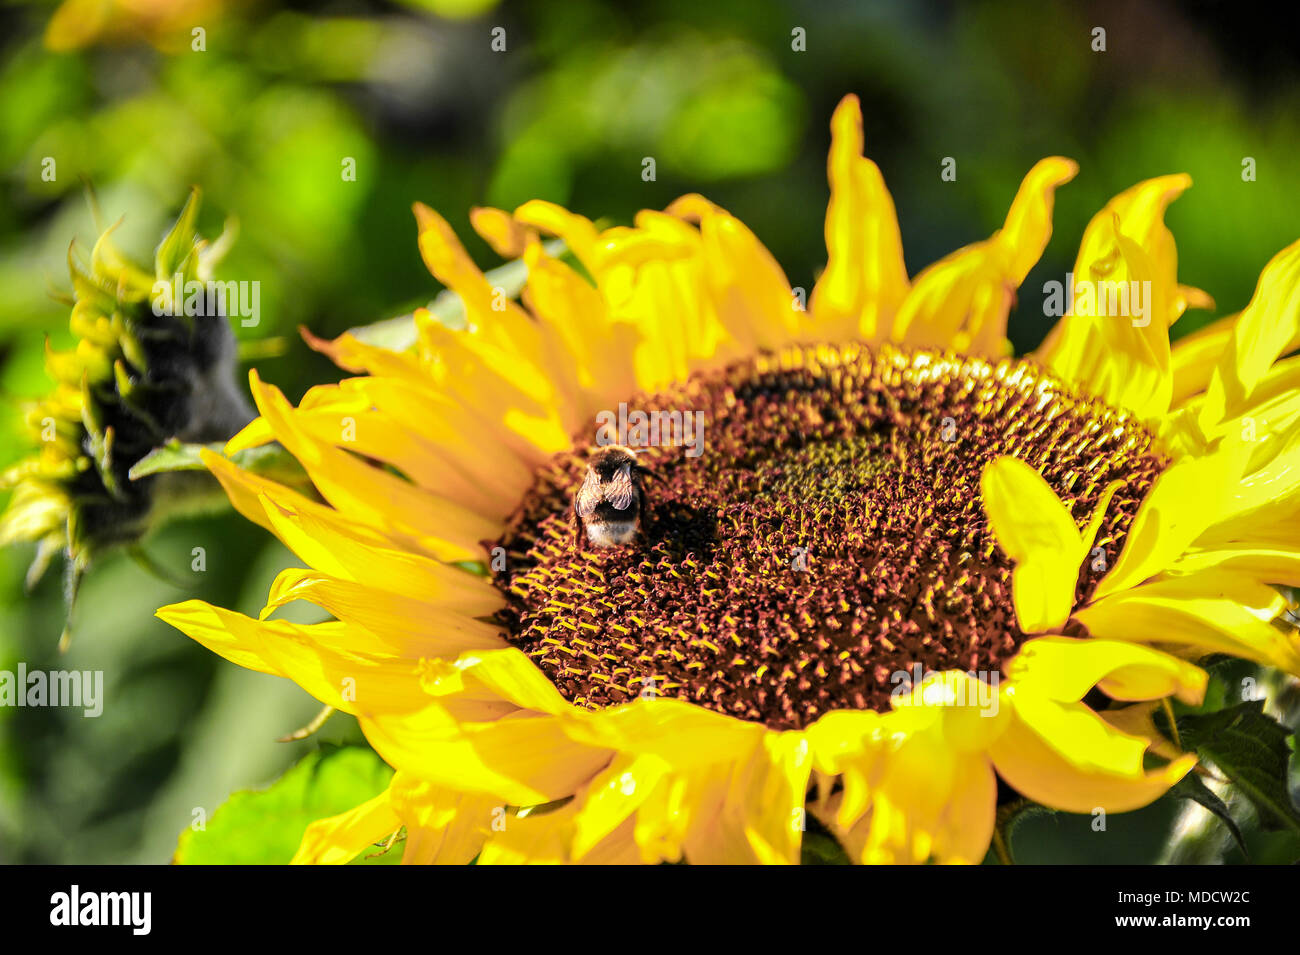 Close up of a bee on a sunflower (Helianthus annuus). Diaphanous wings shimmer on bright yellow flower, on green bokeh background - Stock Image